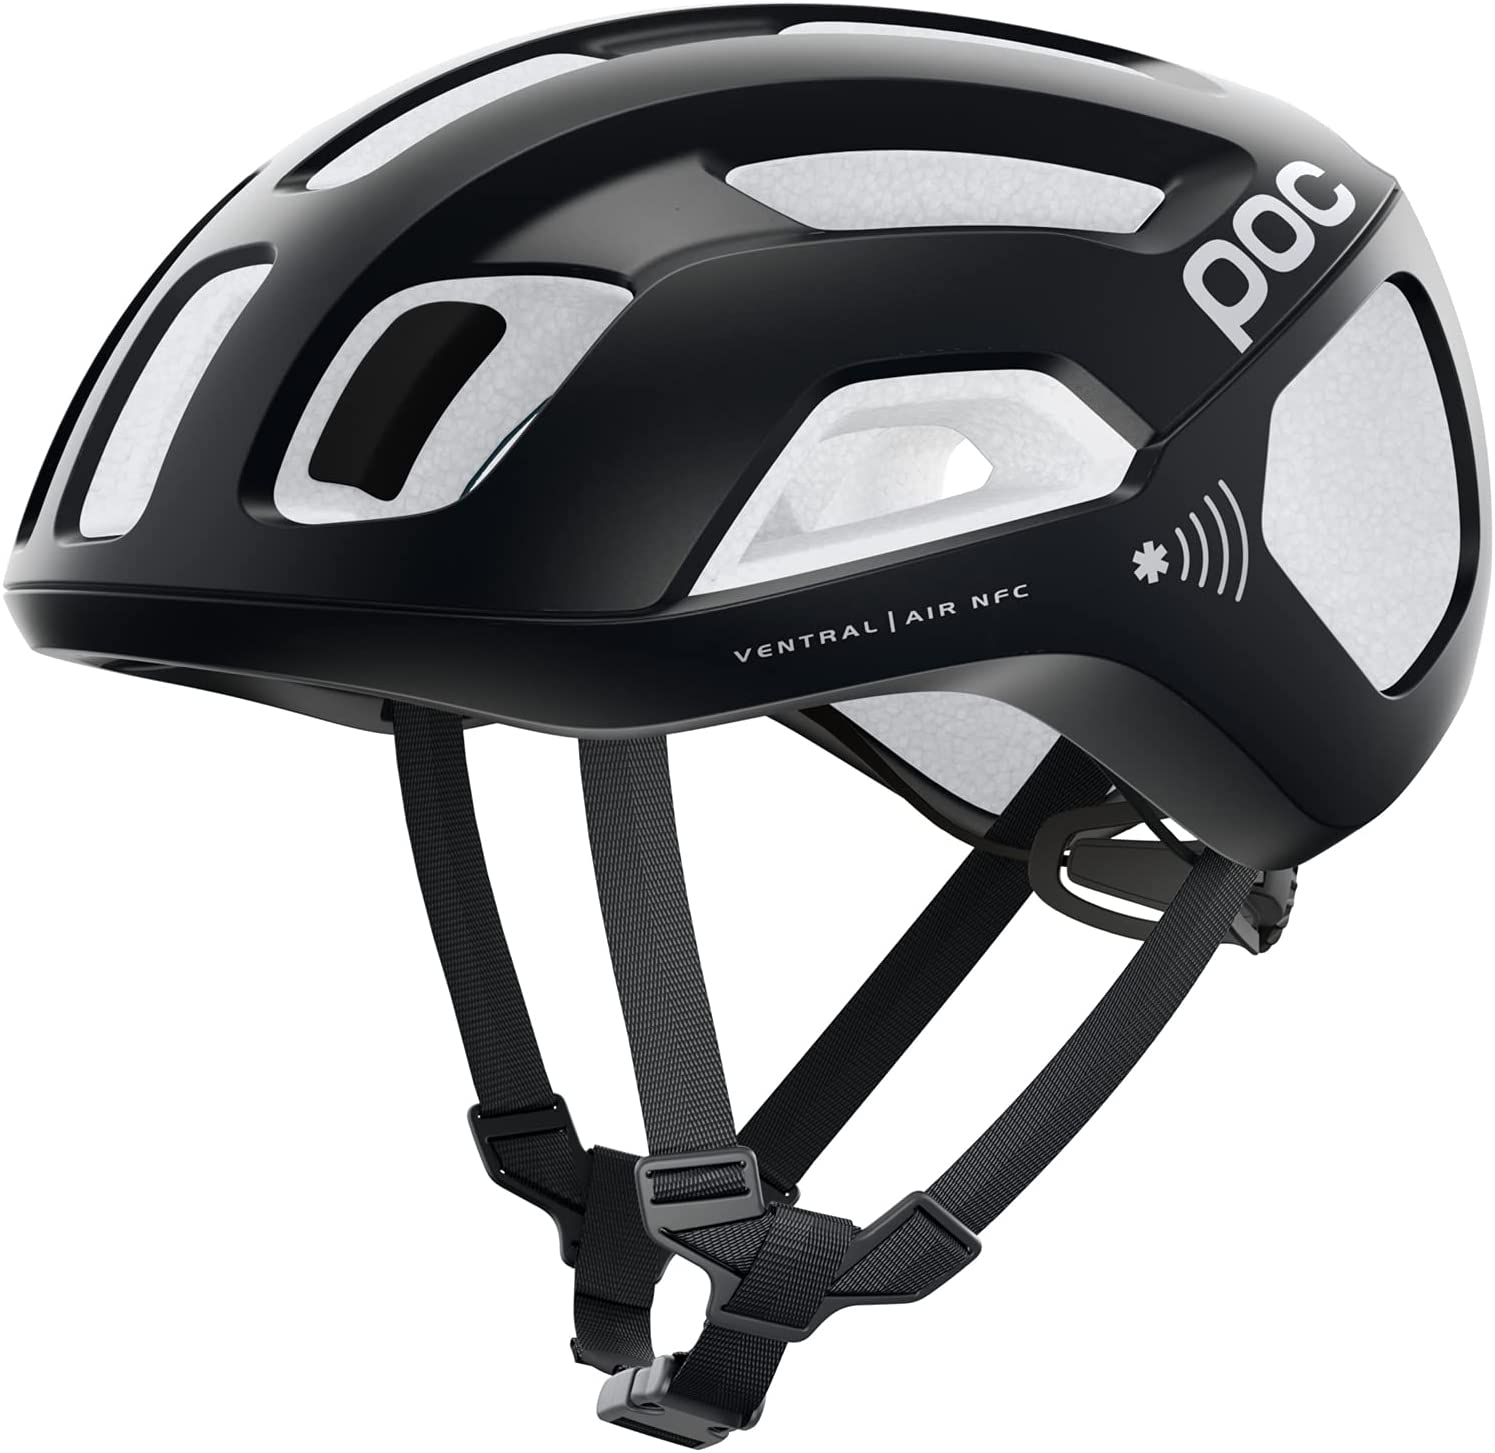 POC Ventral Air Spin NFC Bike Ranking TOP3 Helmet Max 68% OFF Road Cycling for